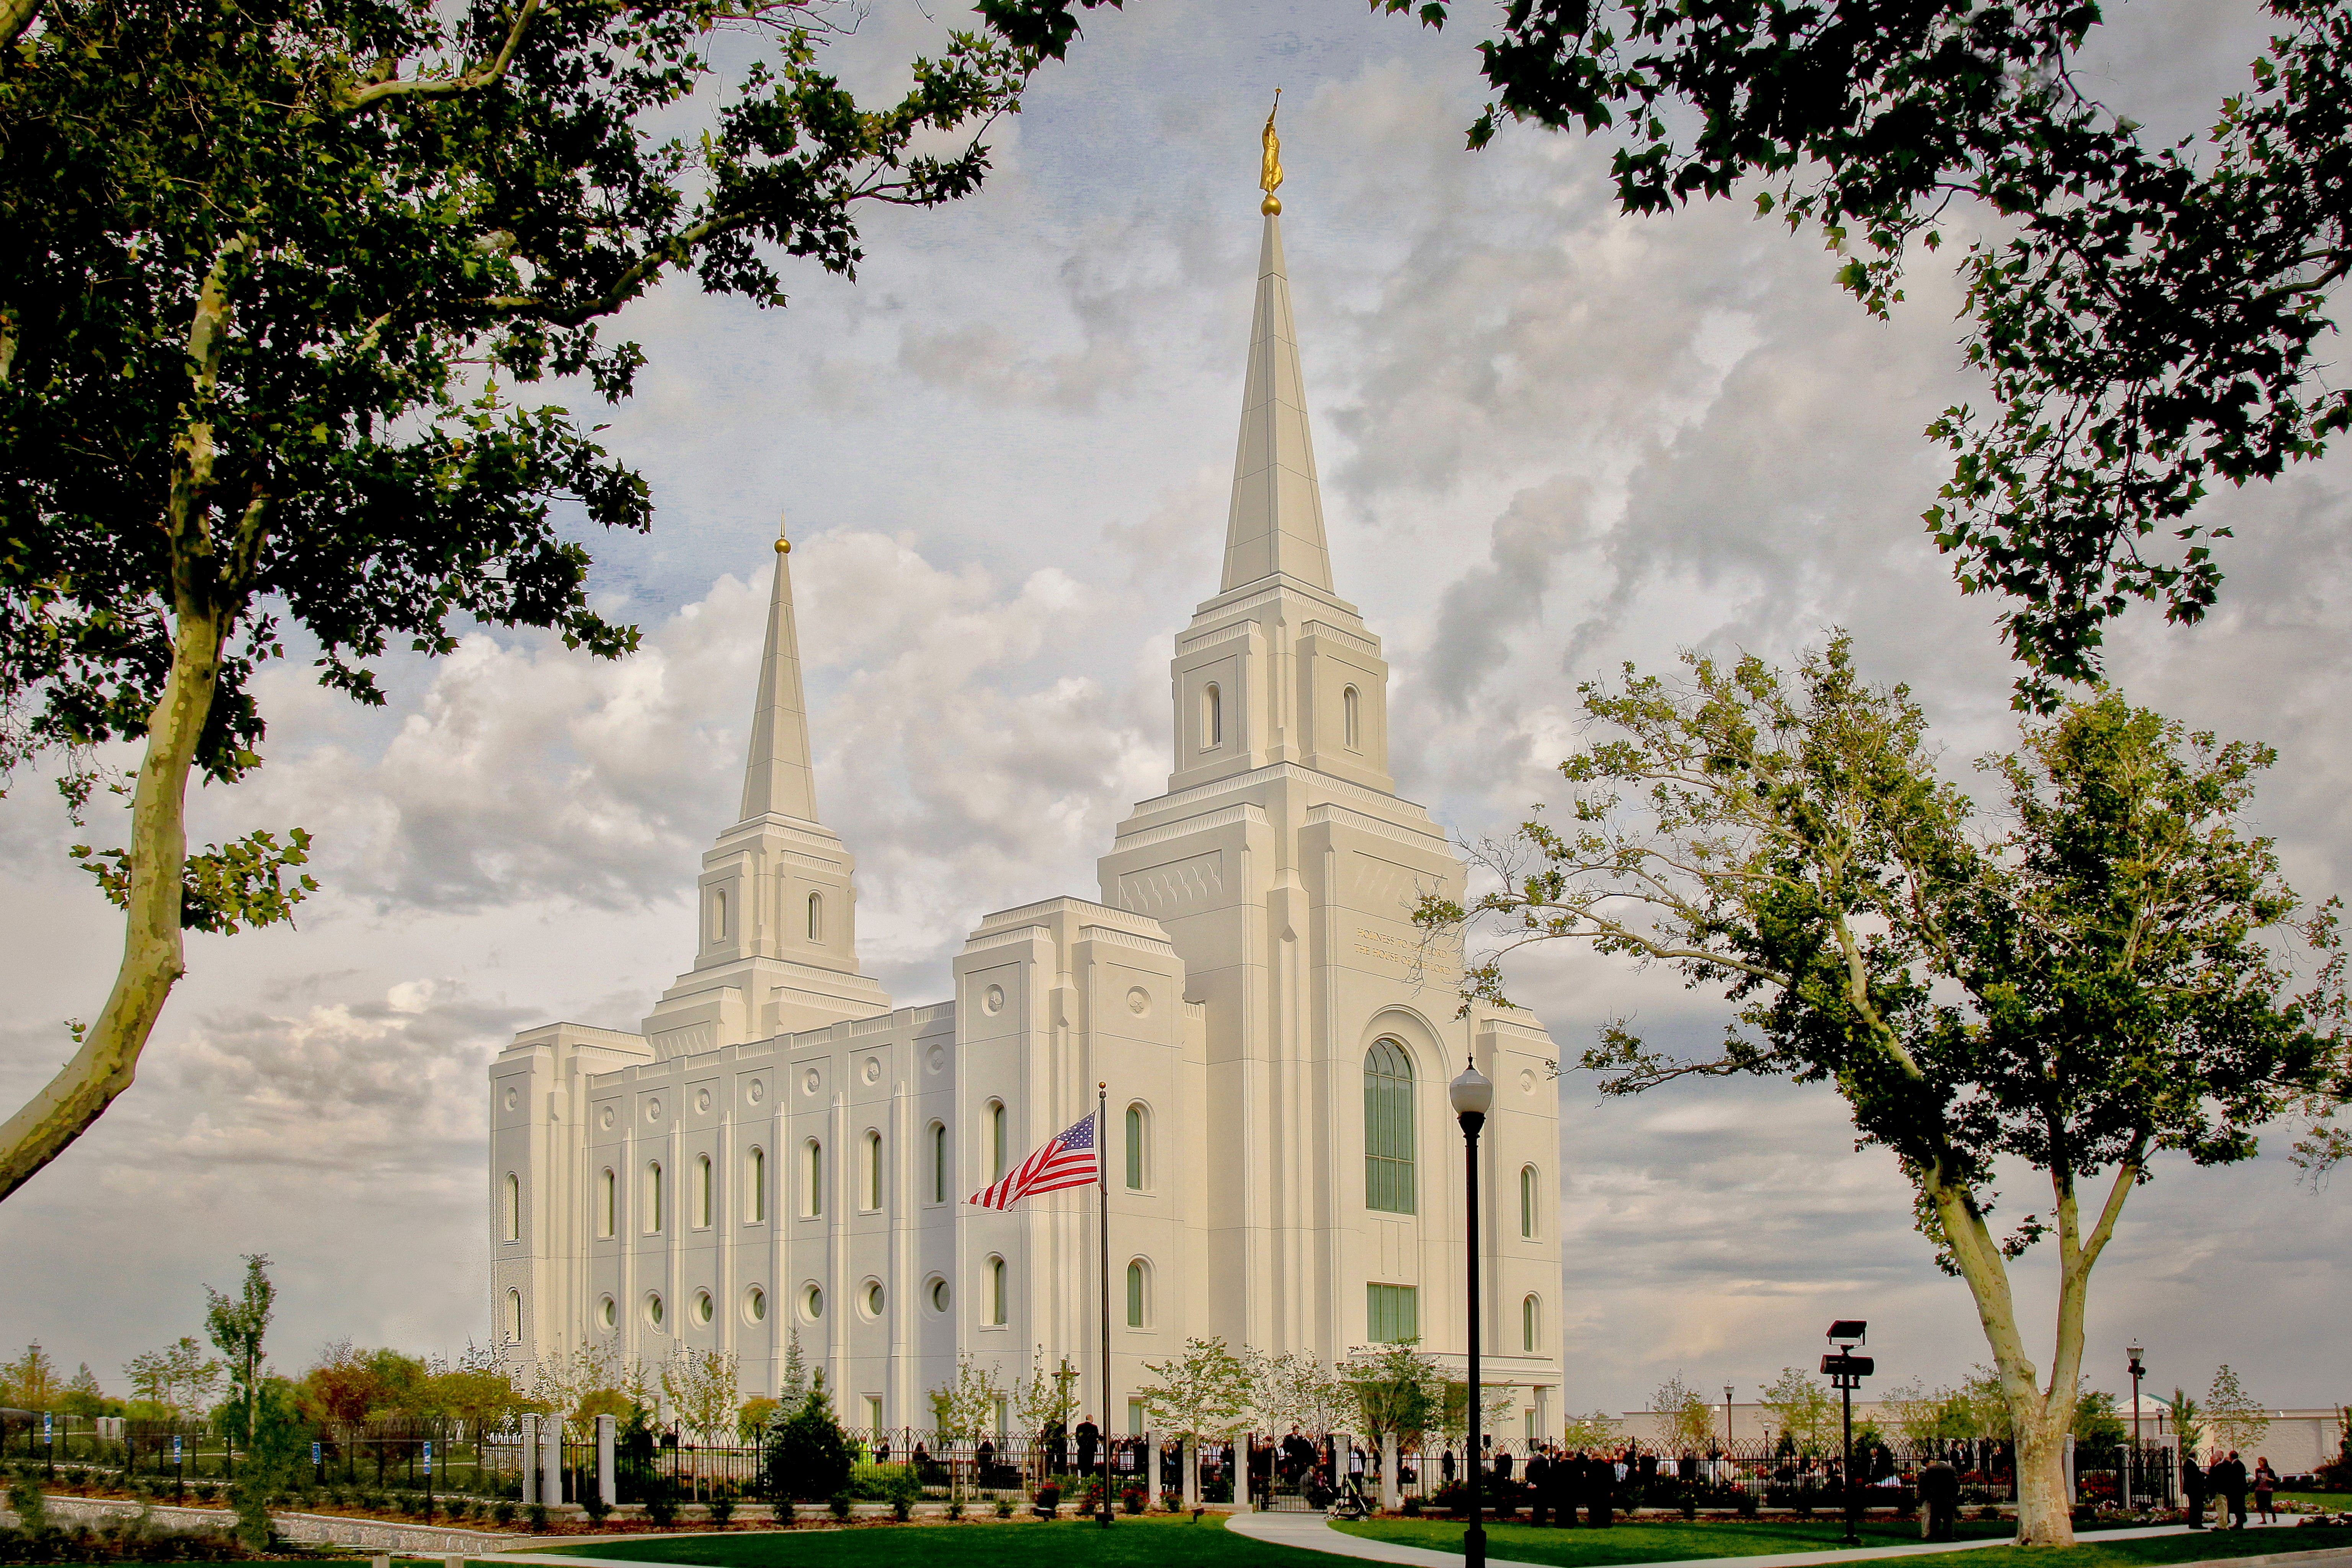 An artist's rendition of the Brigham City Utah Temple and grounds.